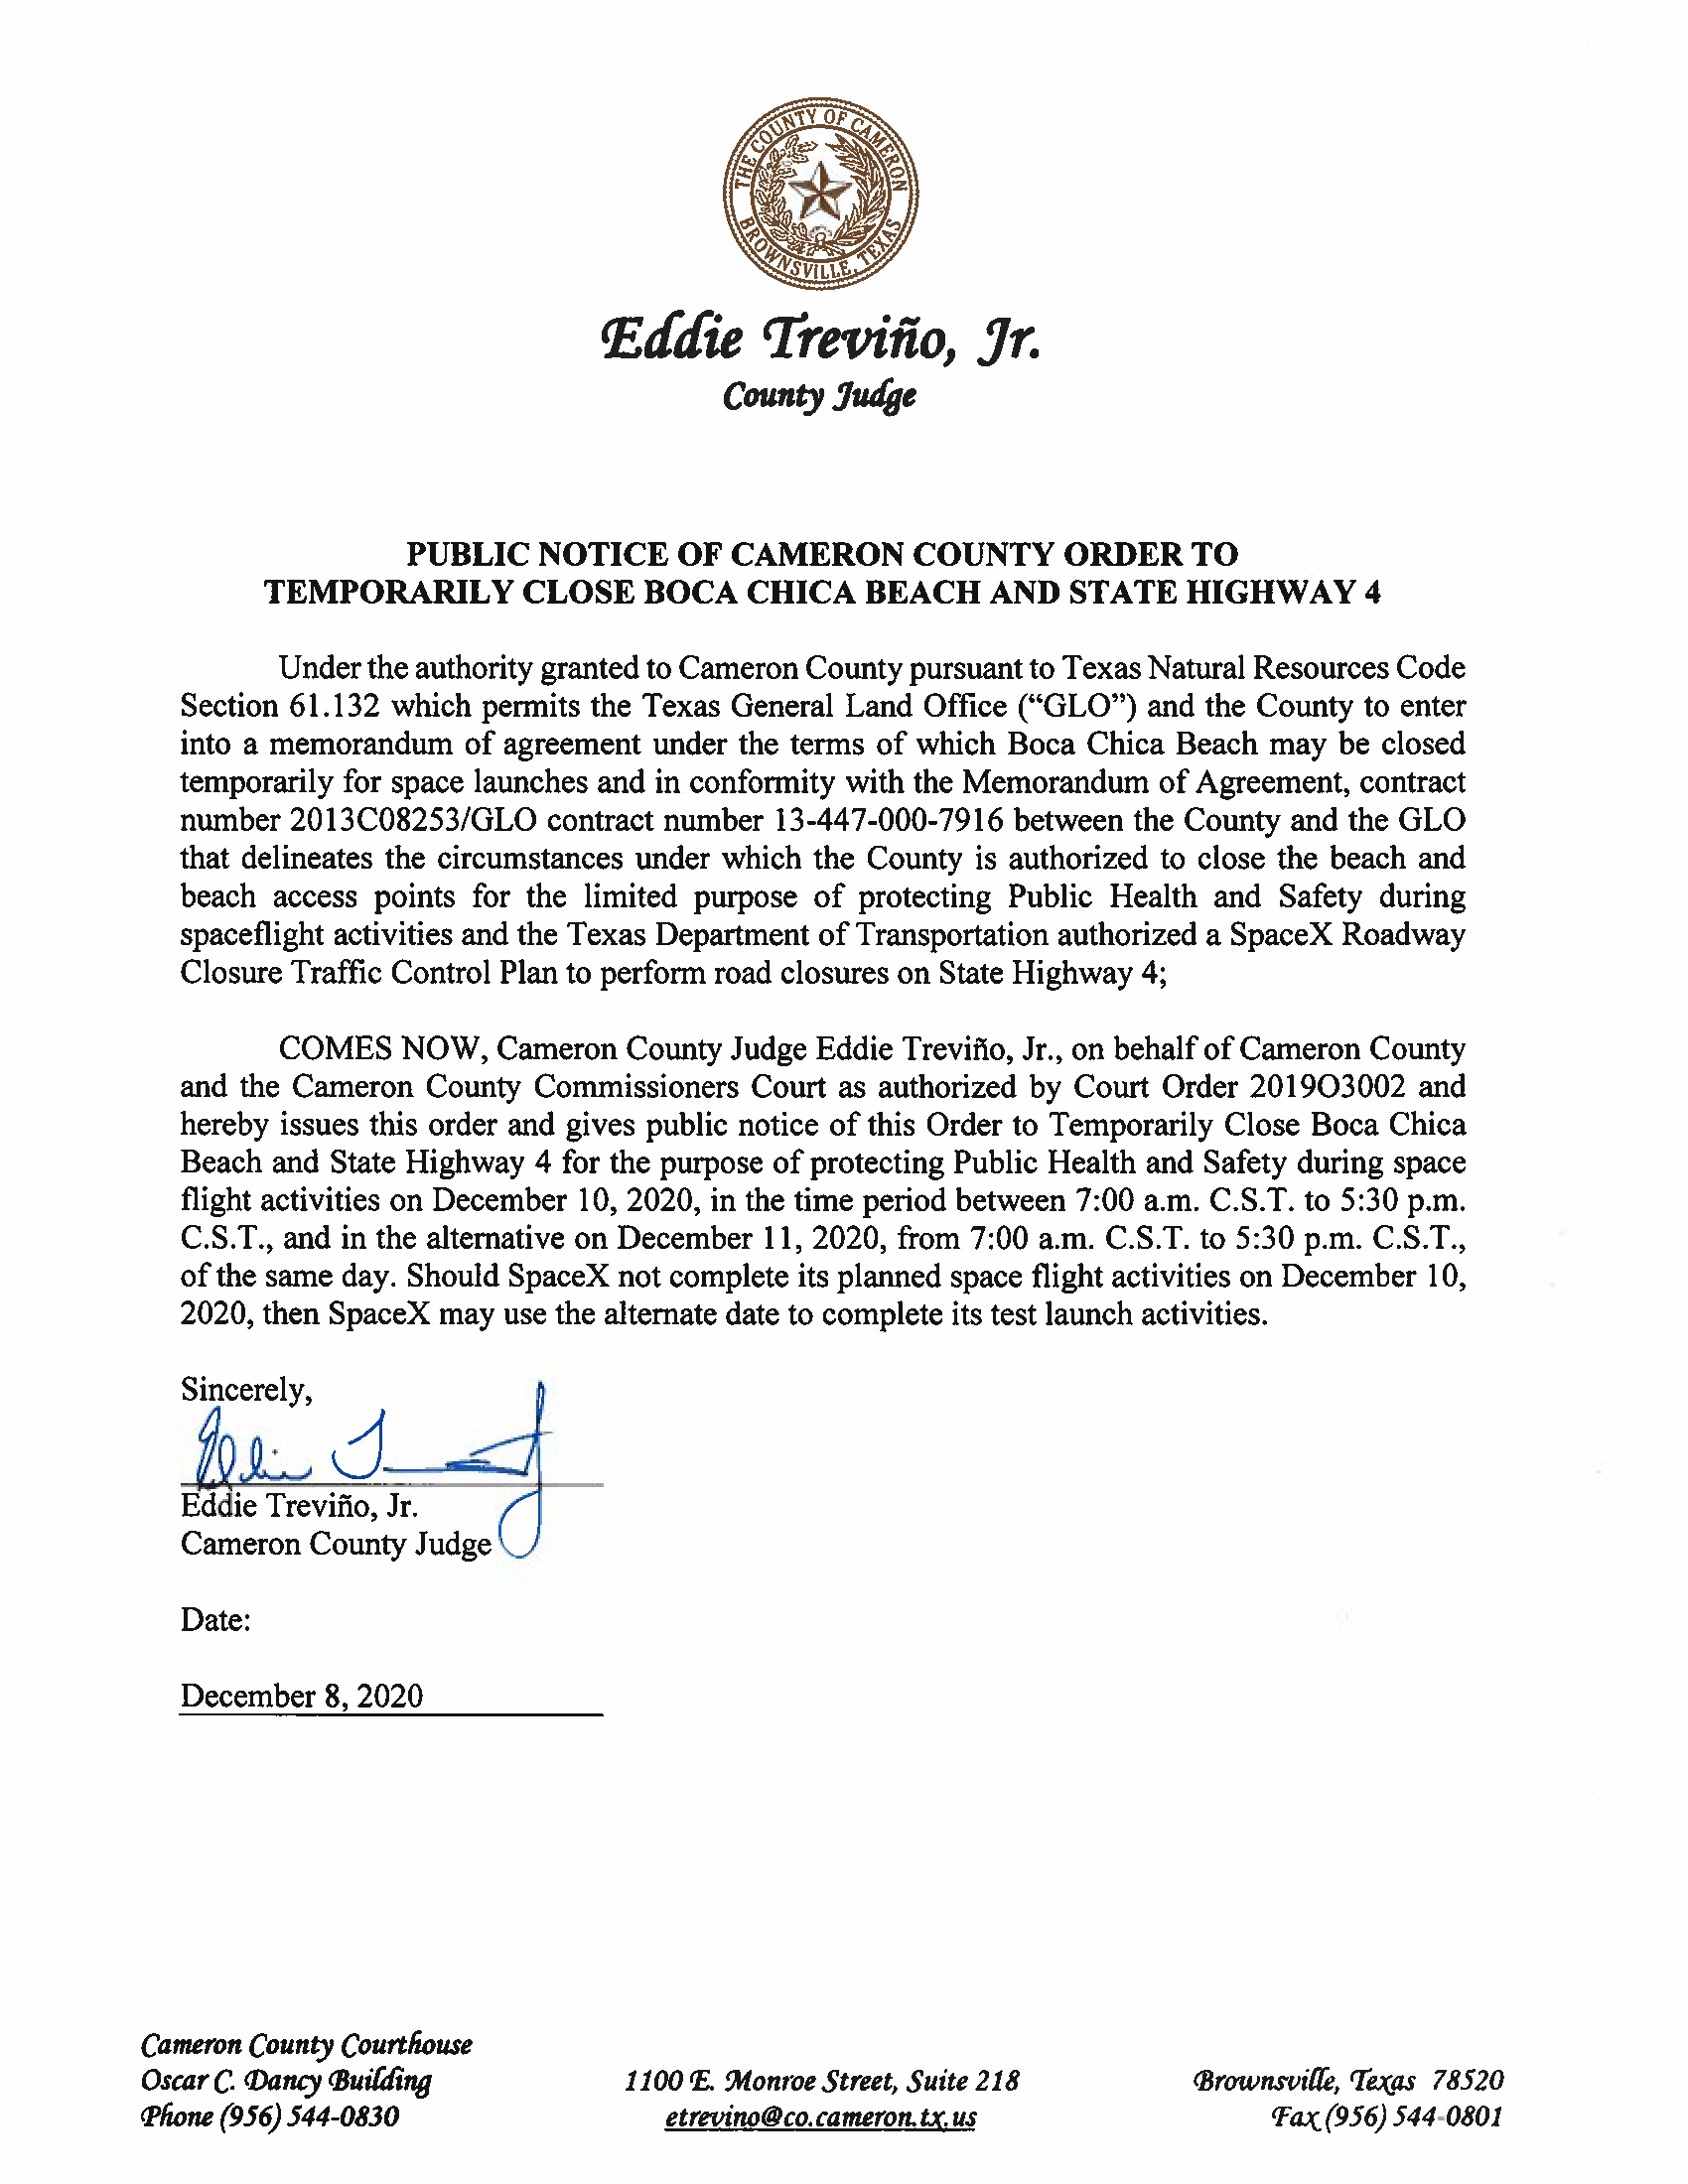 PUBLIC NOTICE OF CAMERON COUNTY ORDER TO TEMP. BEACH CLOSURE AND HWY.12.10.20.docx Page 1